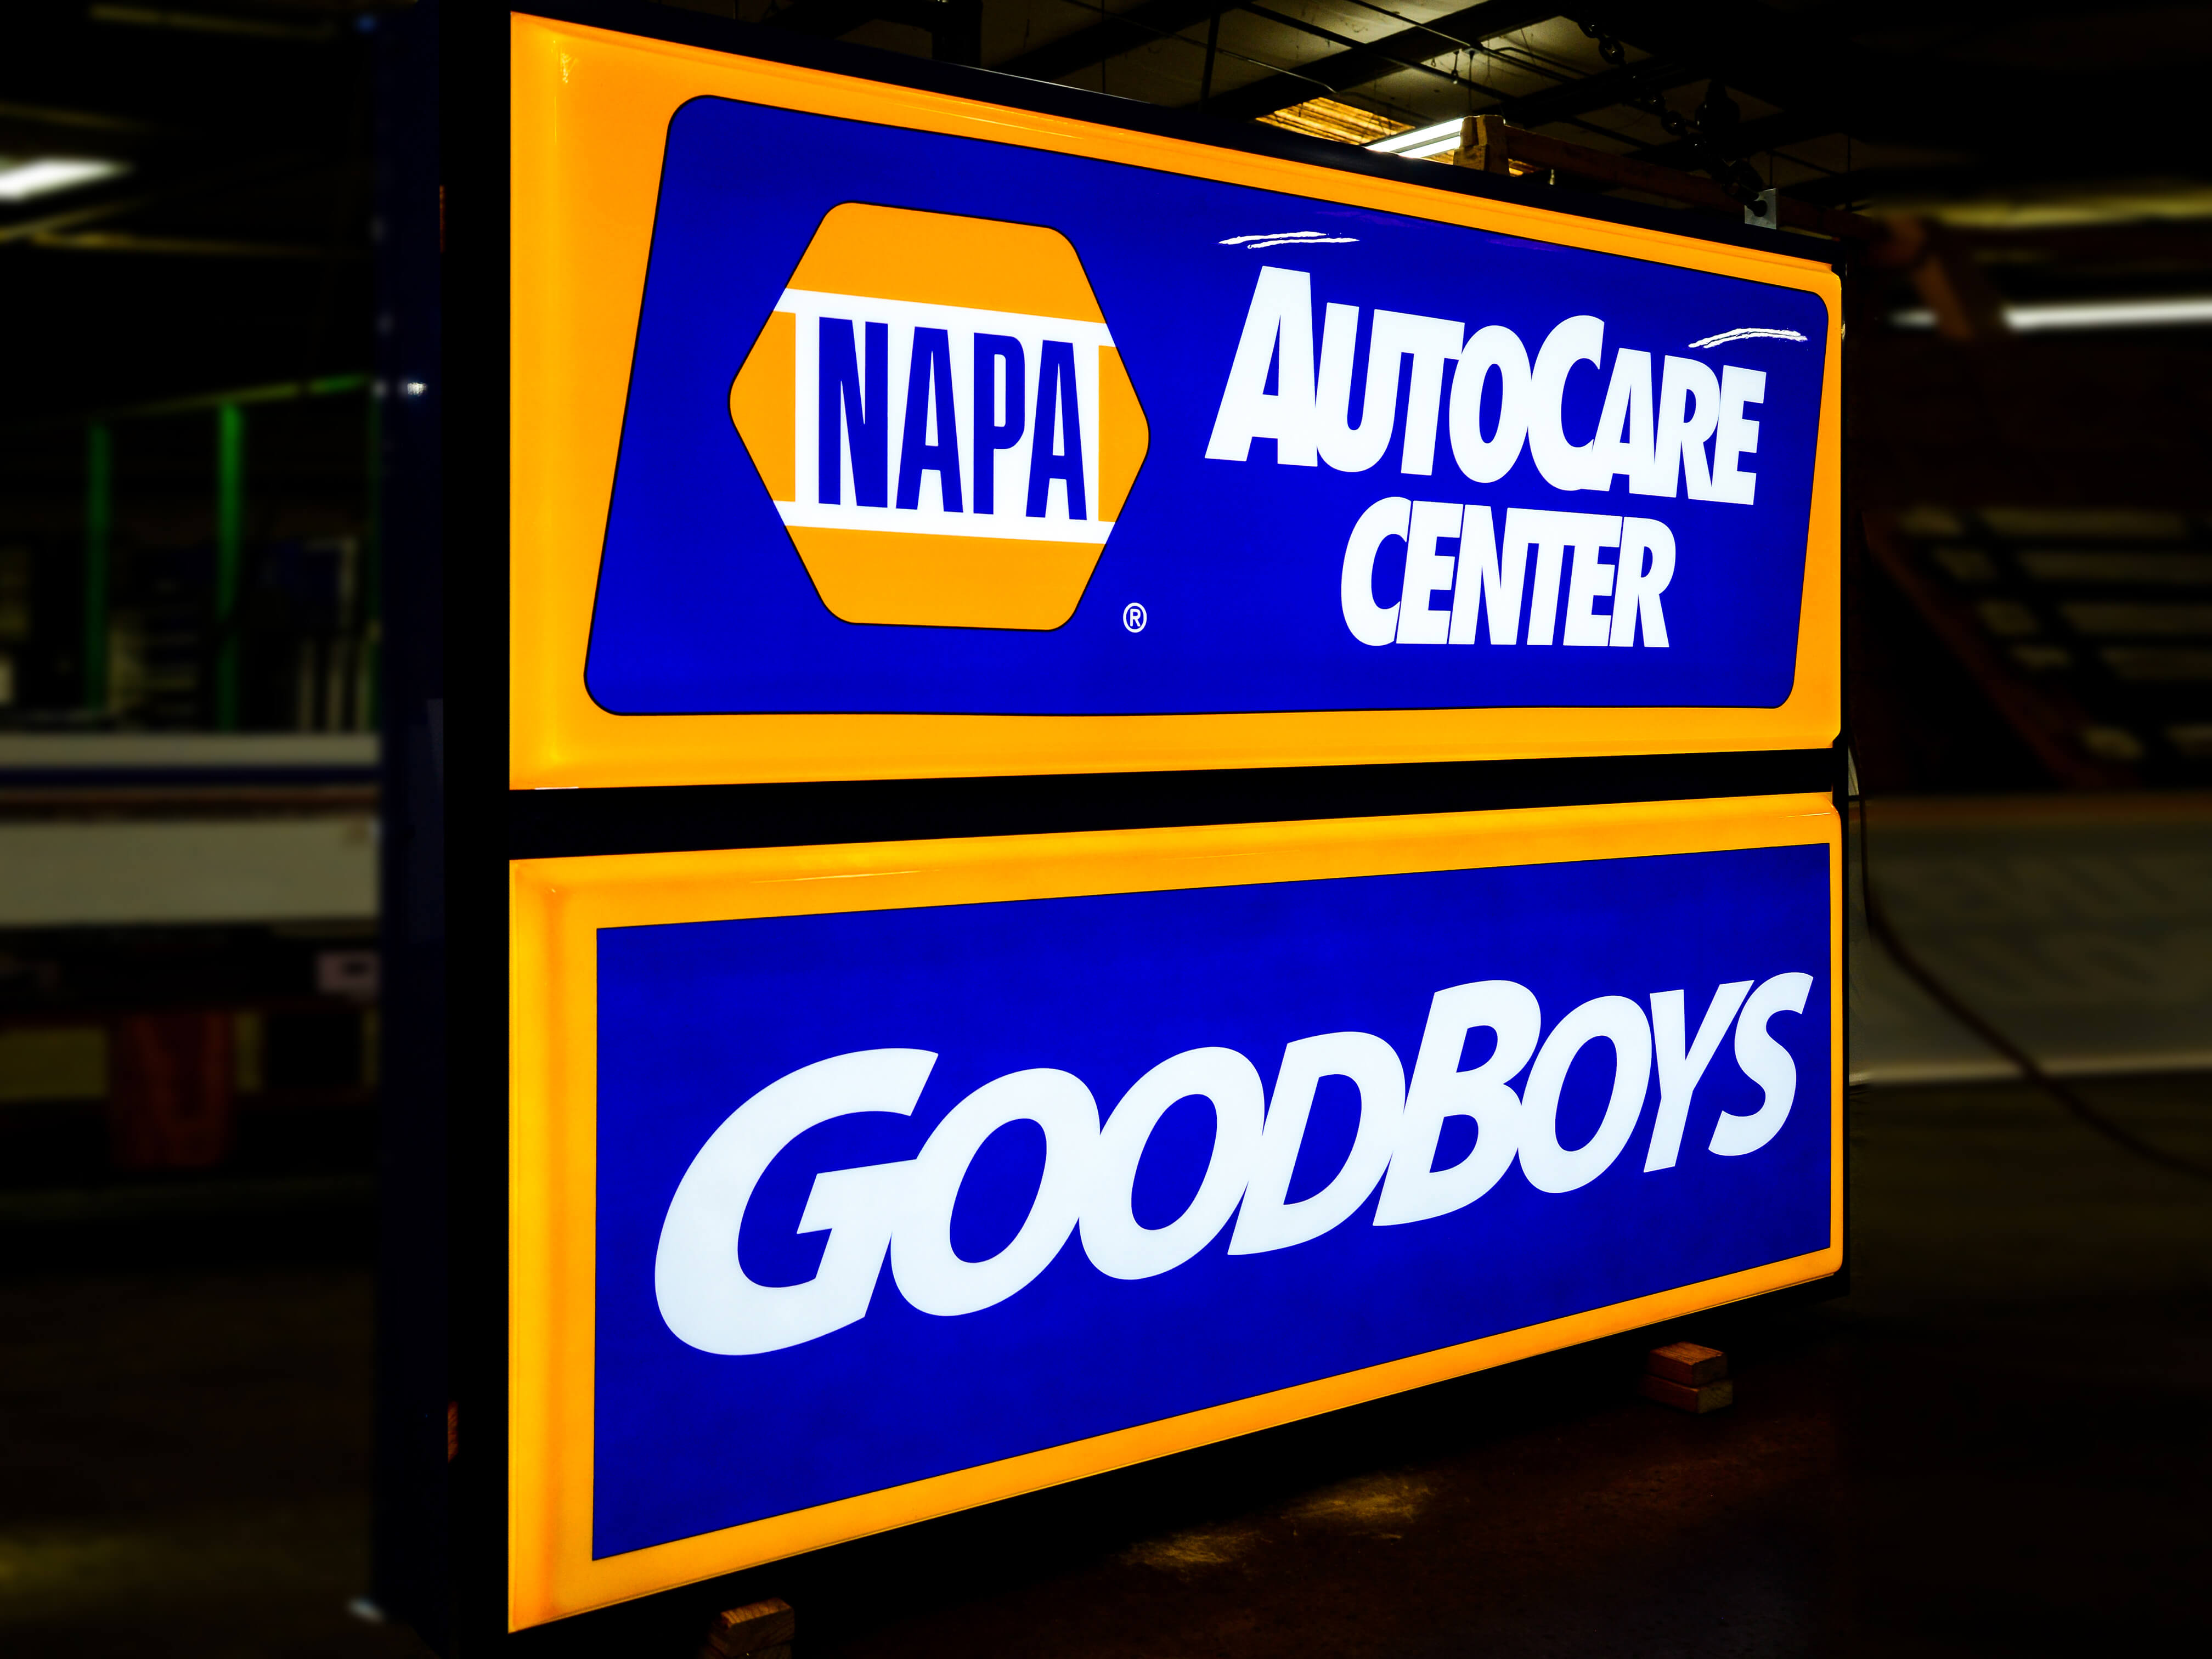 One of several Napa Auto Care signs made for their partnership network.